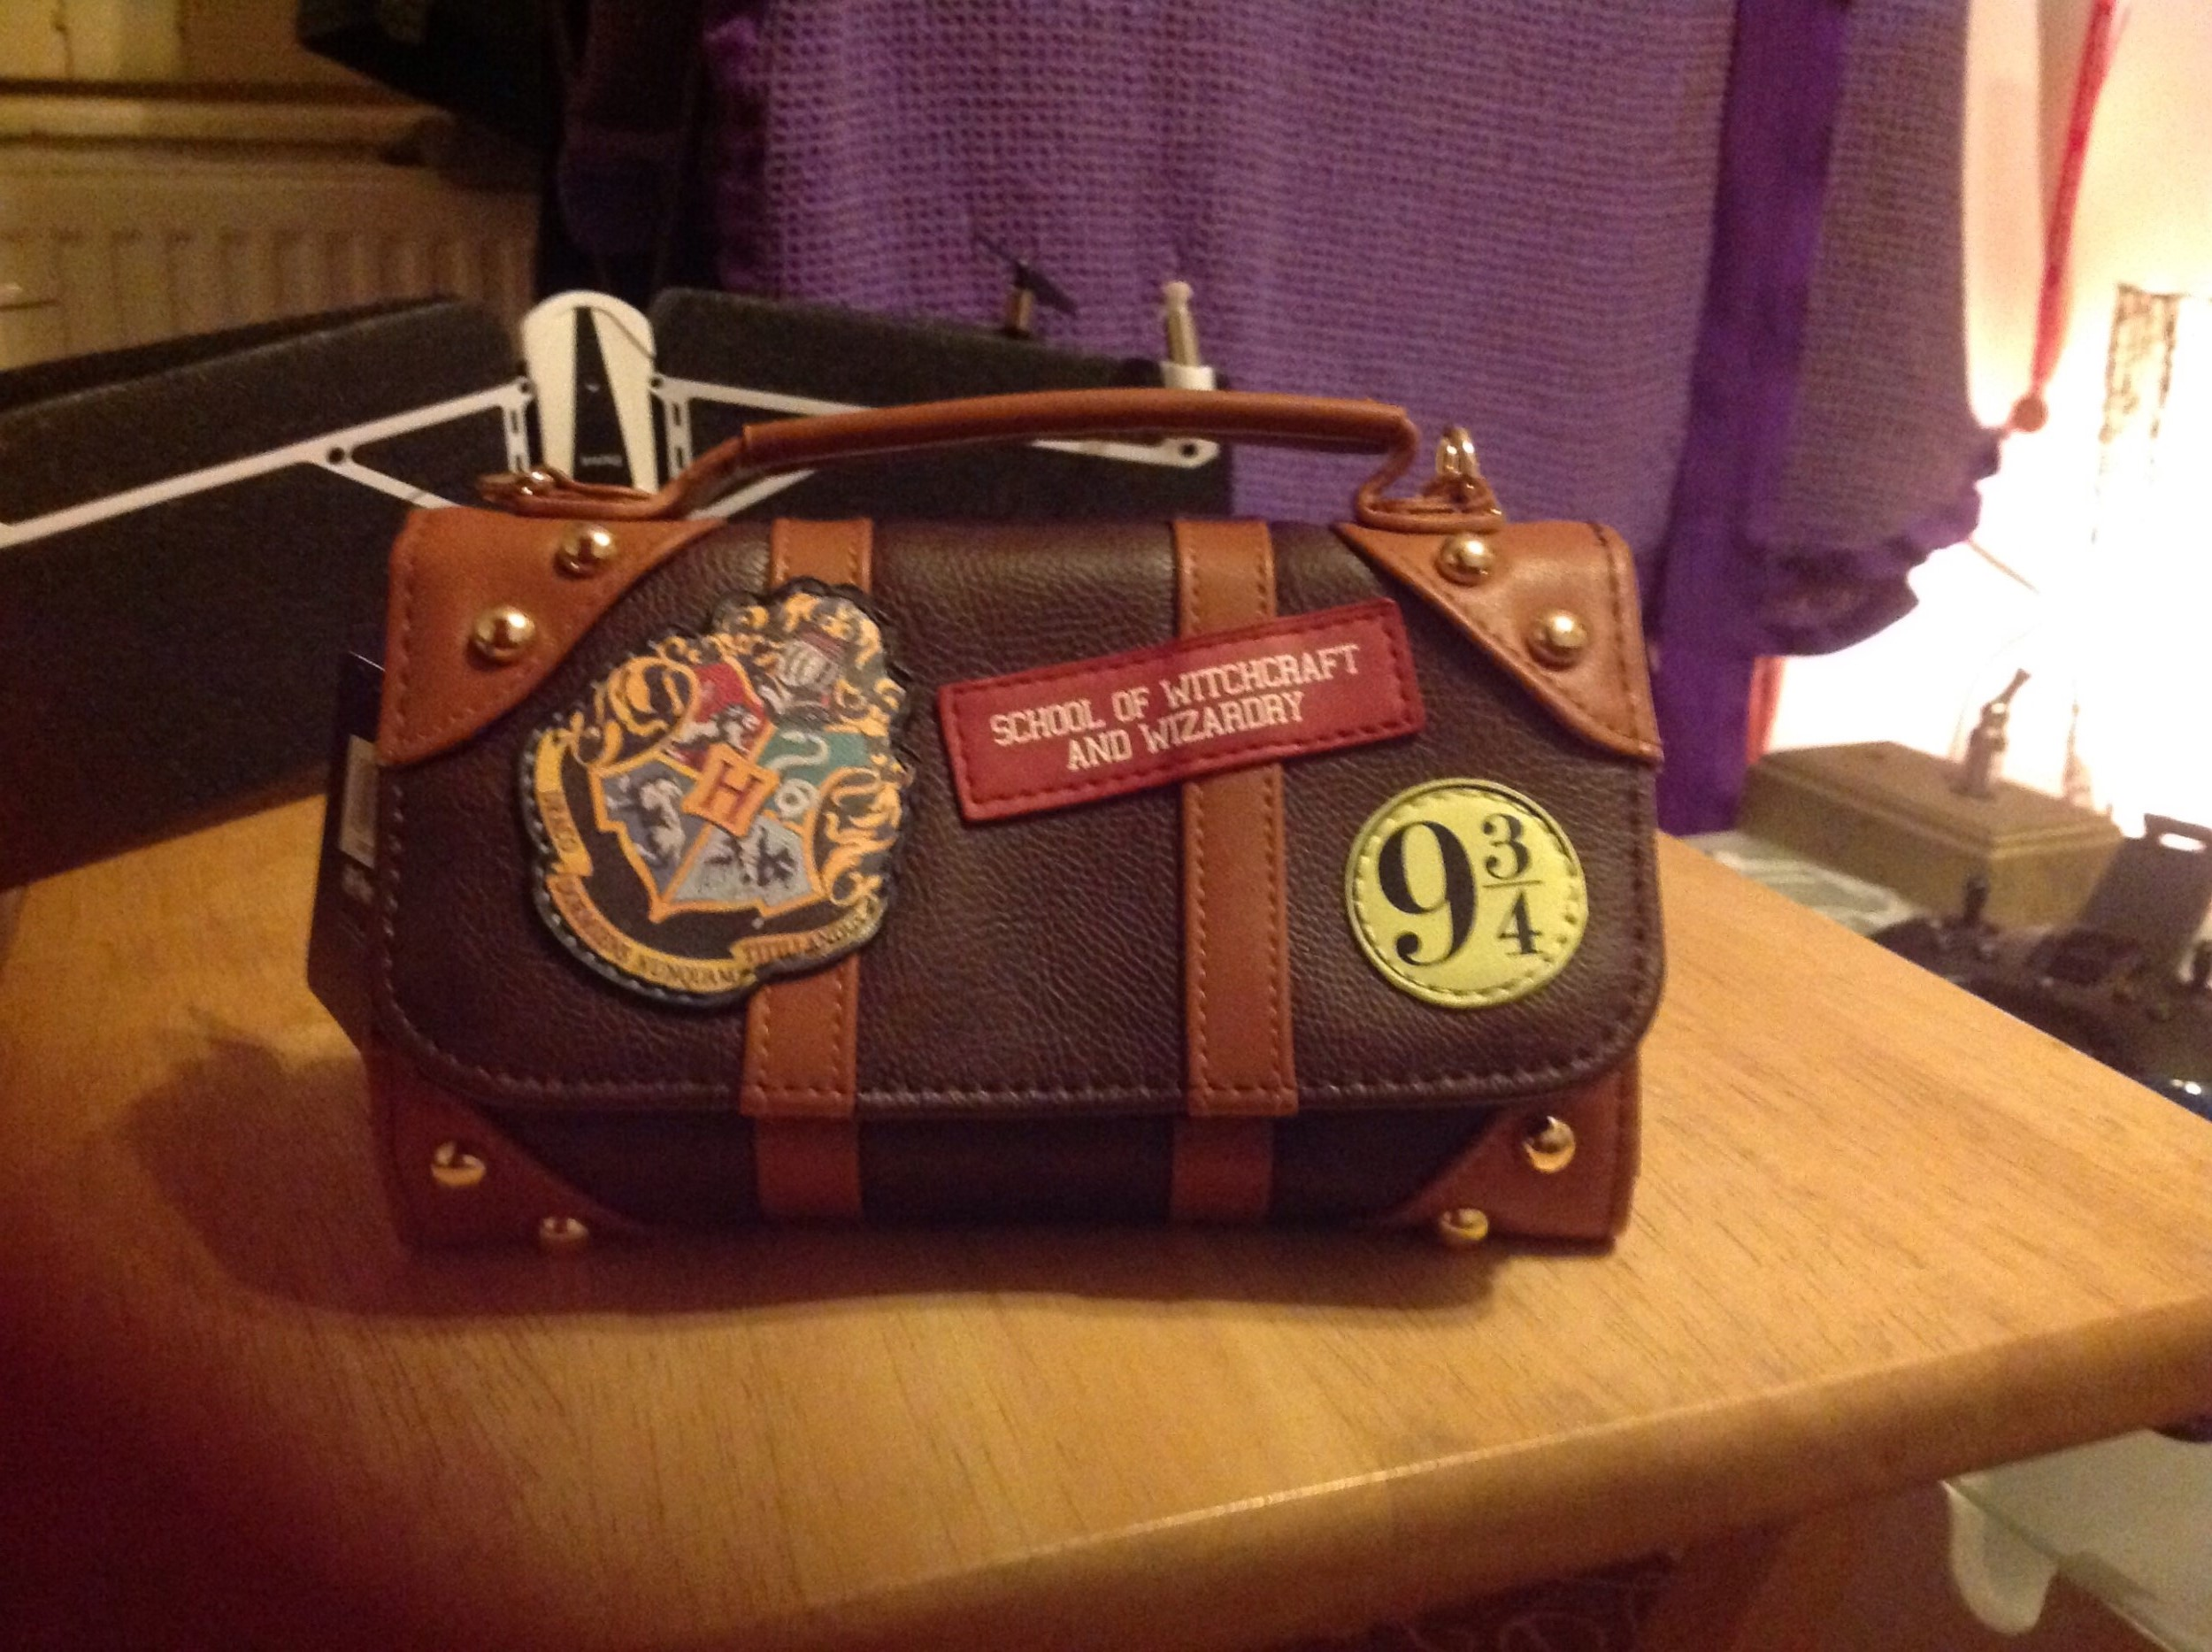 Harry Potter™ Officially Licensed Luggage Style Purse / Handbag